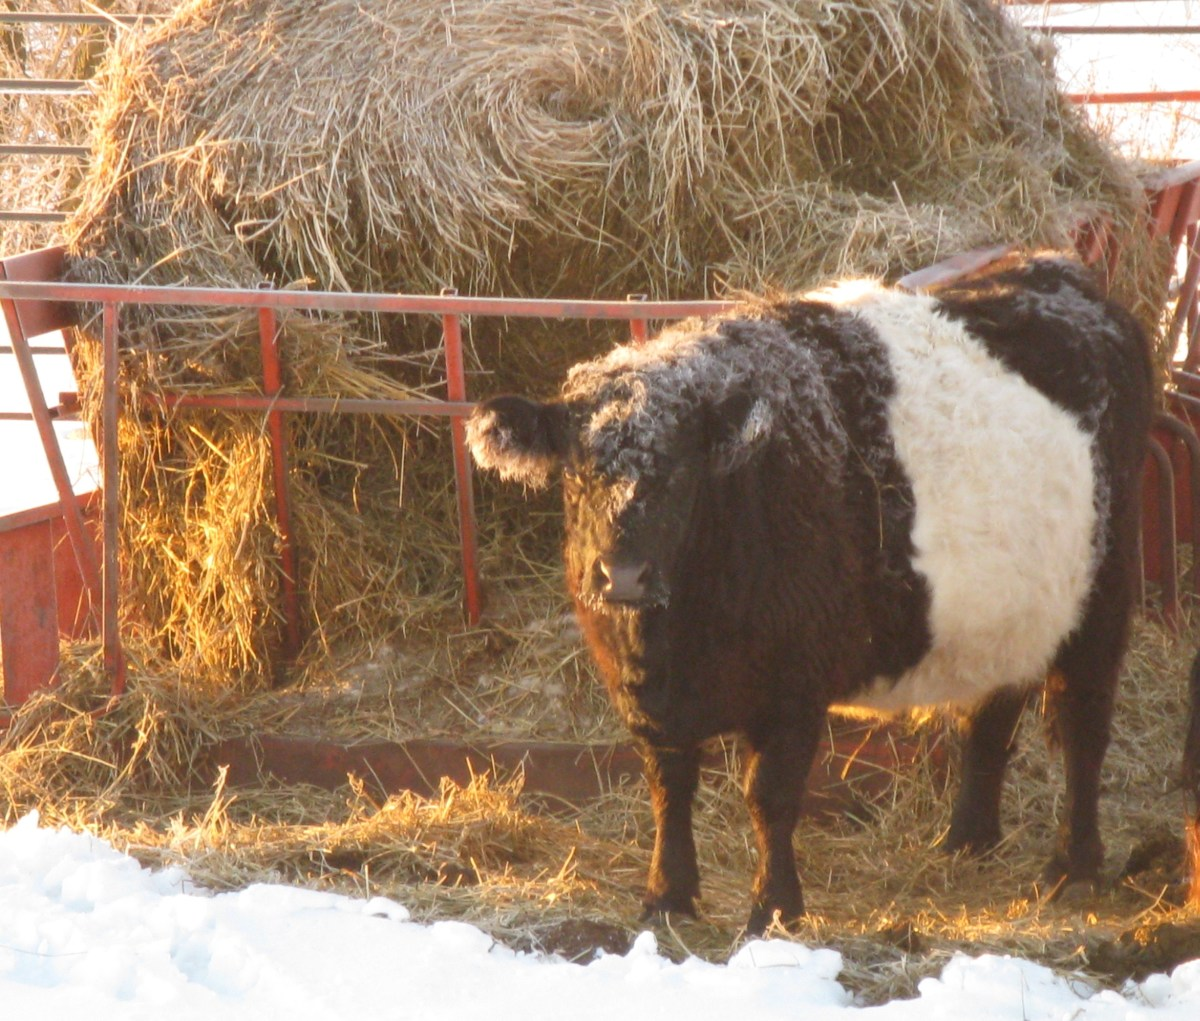 Belted Galloway Heritage Breed Cattle - 10 Reasons to Raise them for Beef